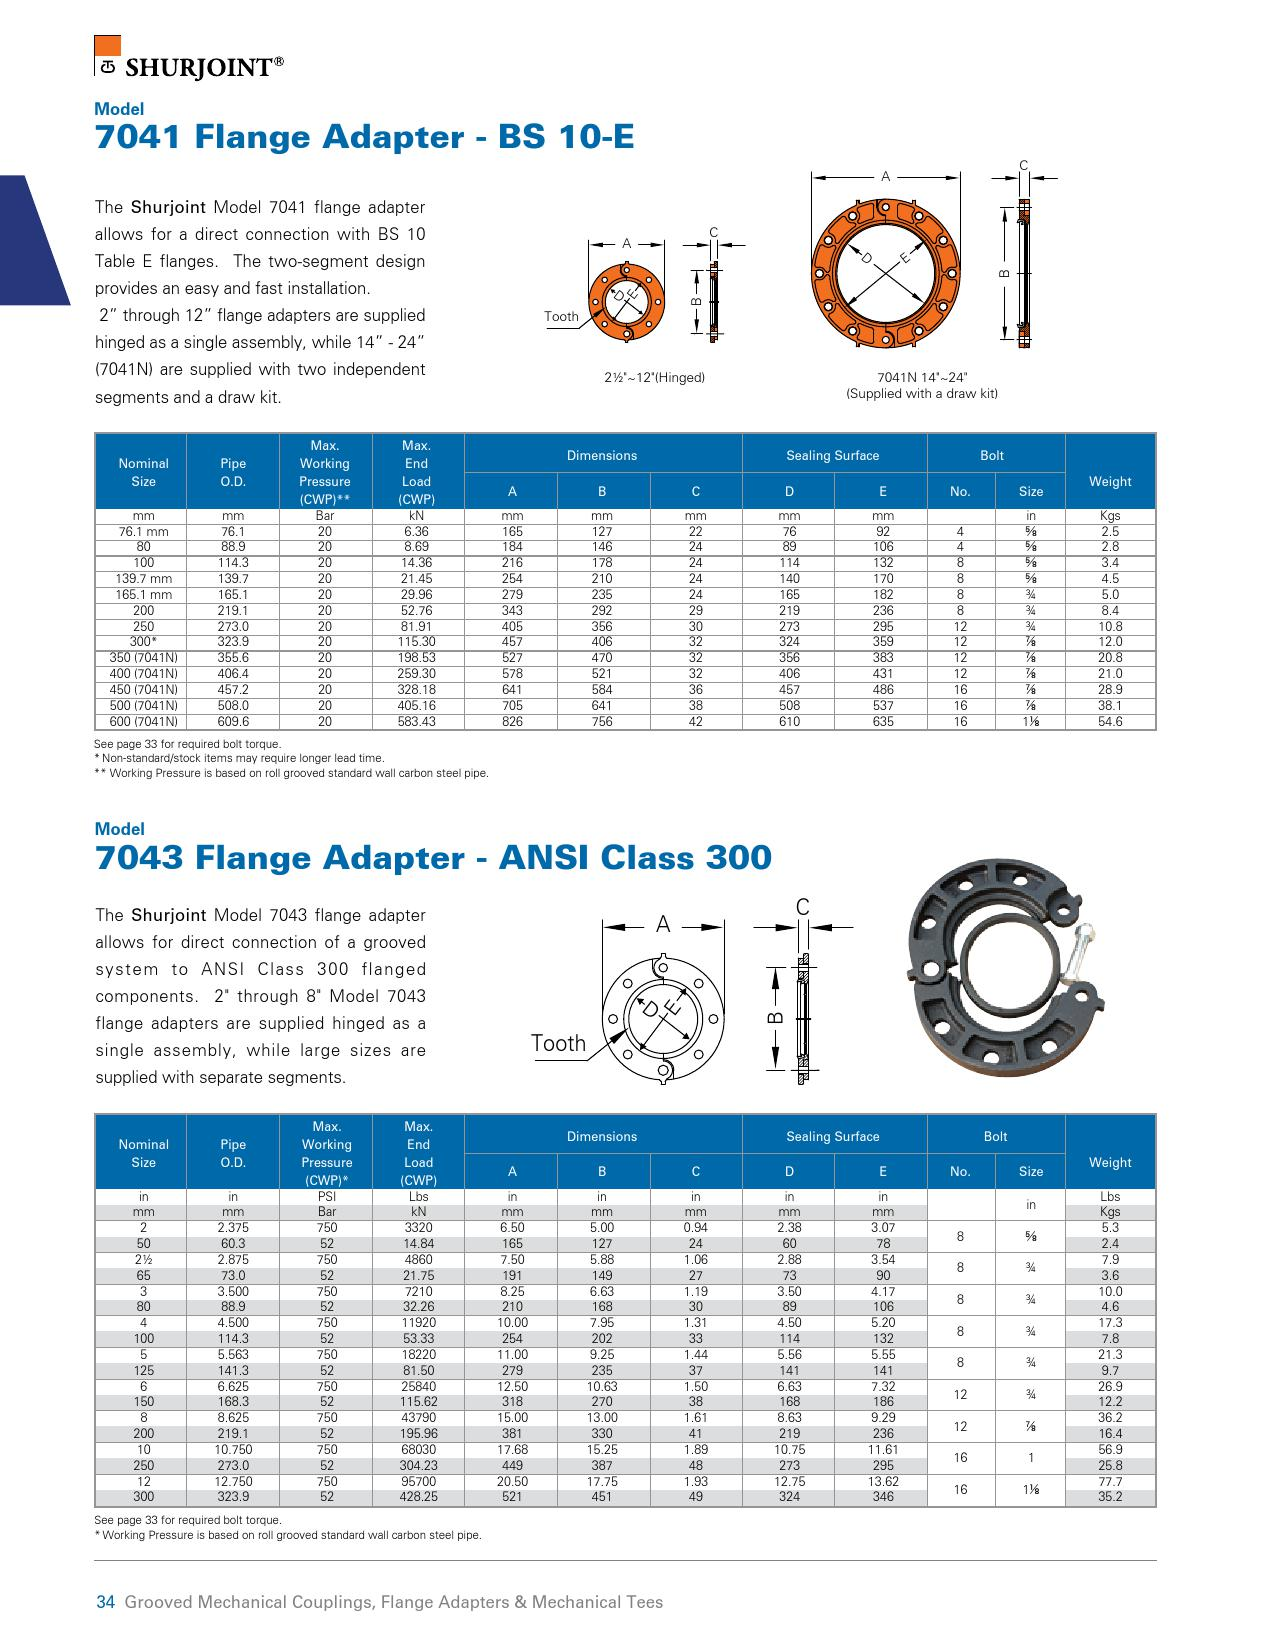 Grooved Mechanical Couplings,Flange Adapters